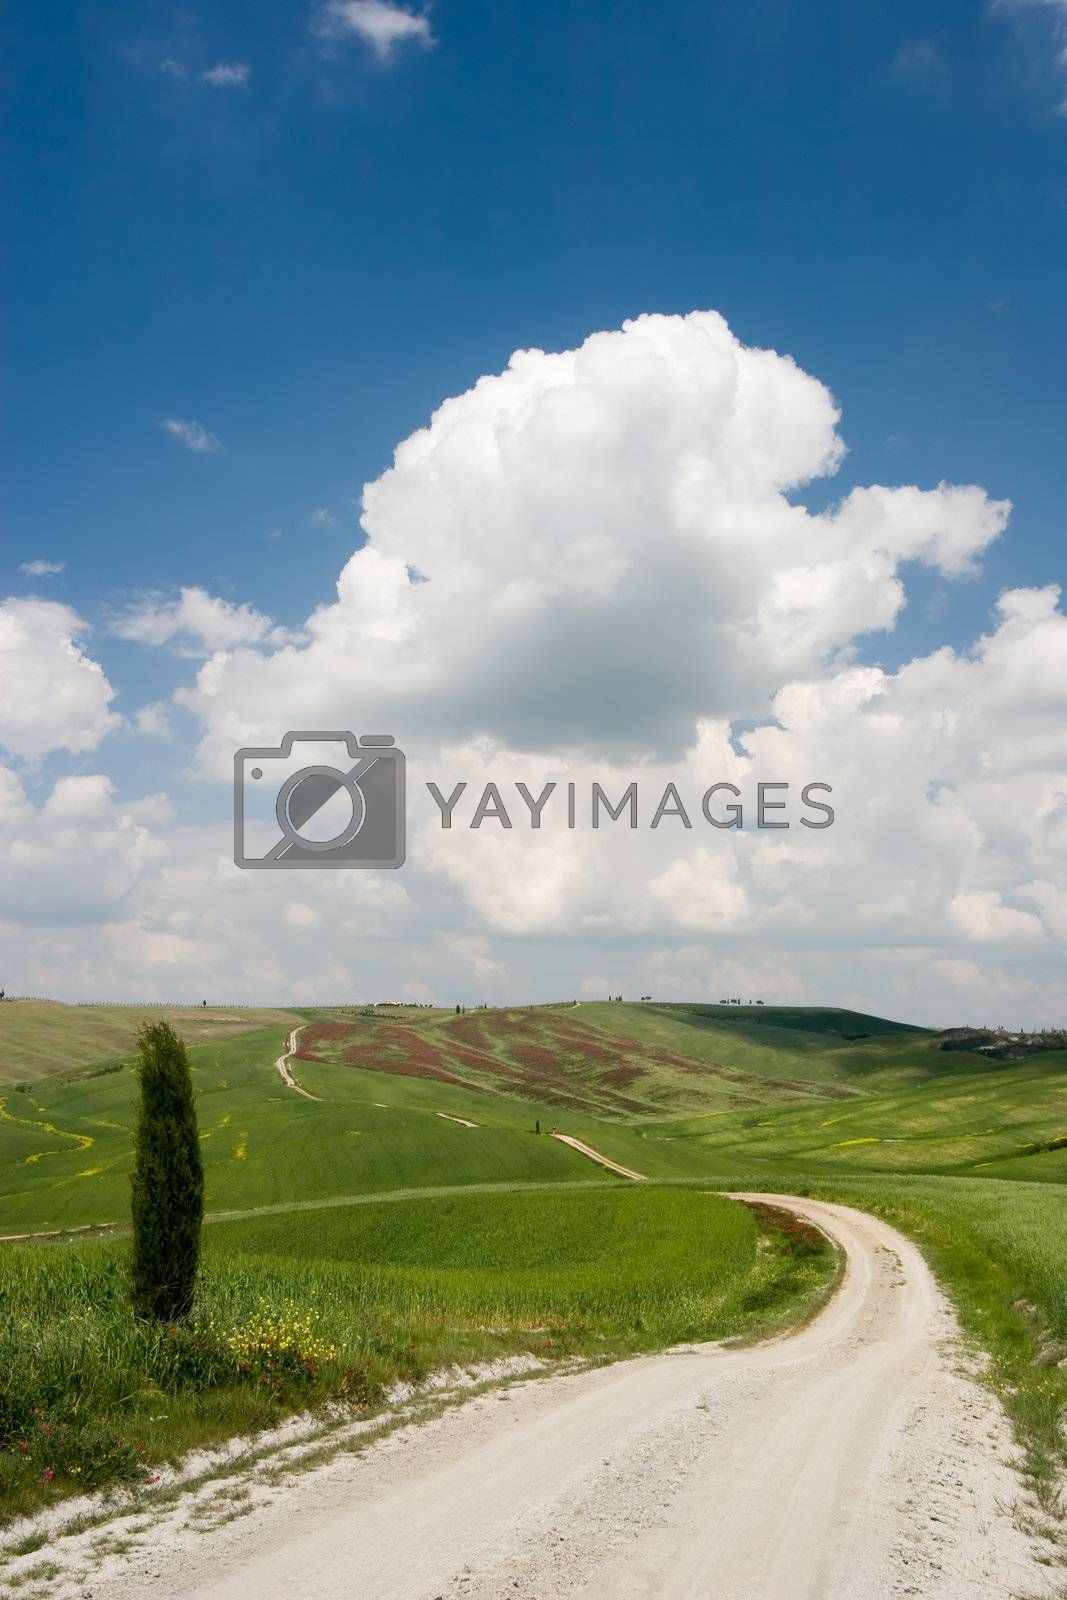 A countryroad in the Tuscan landscape. Tuscany, Italy.